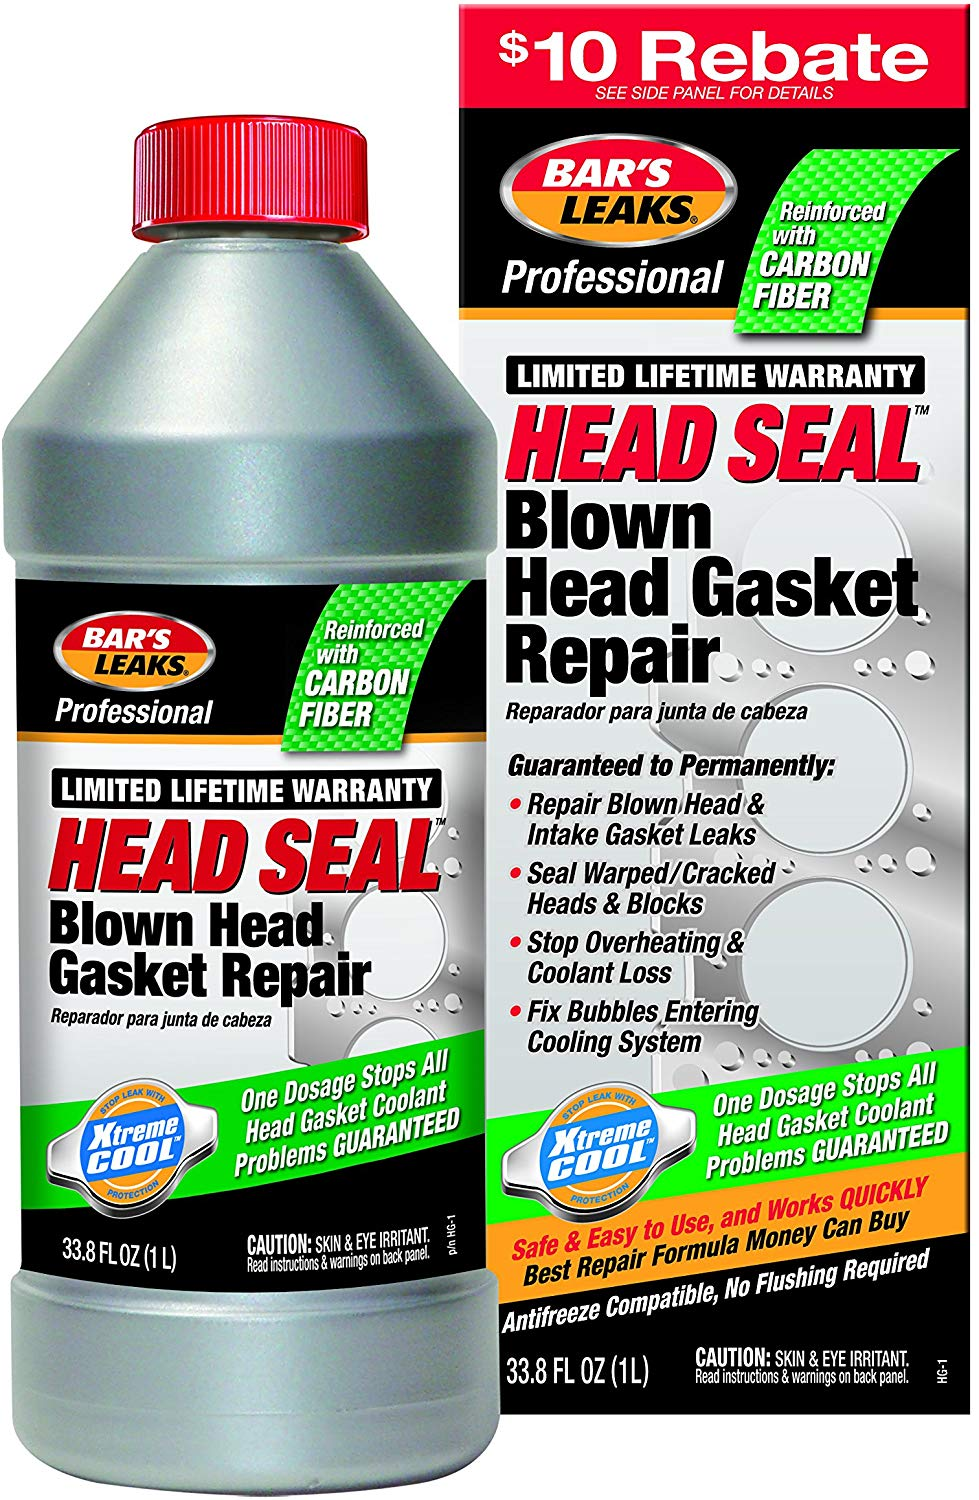 9. Bar's Leaks Head Gasket Sealer